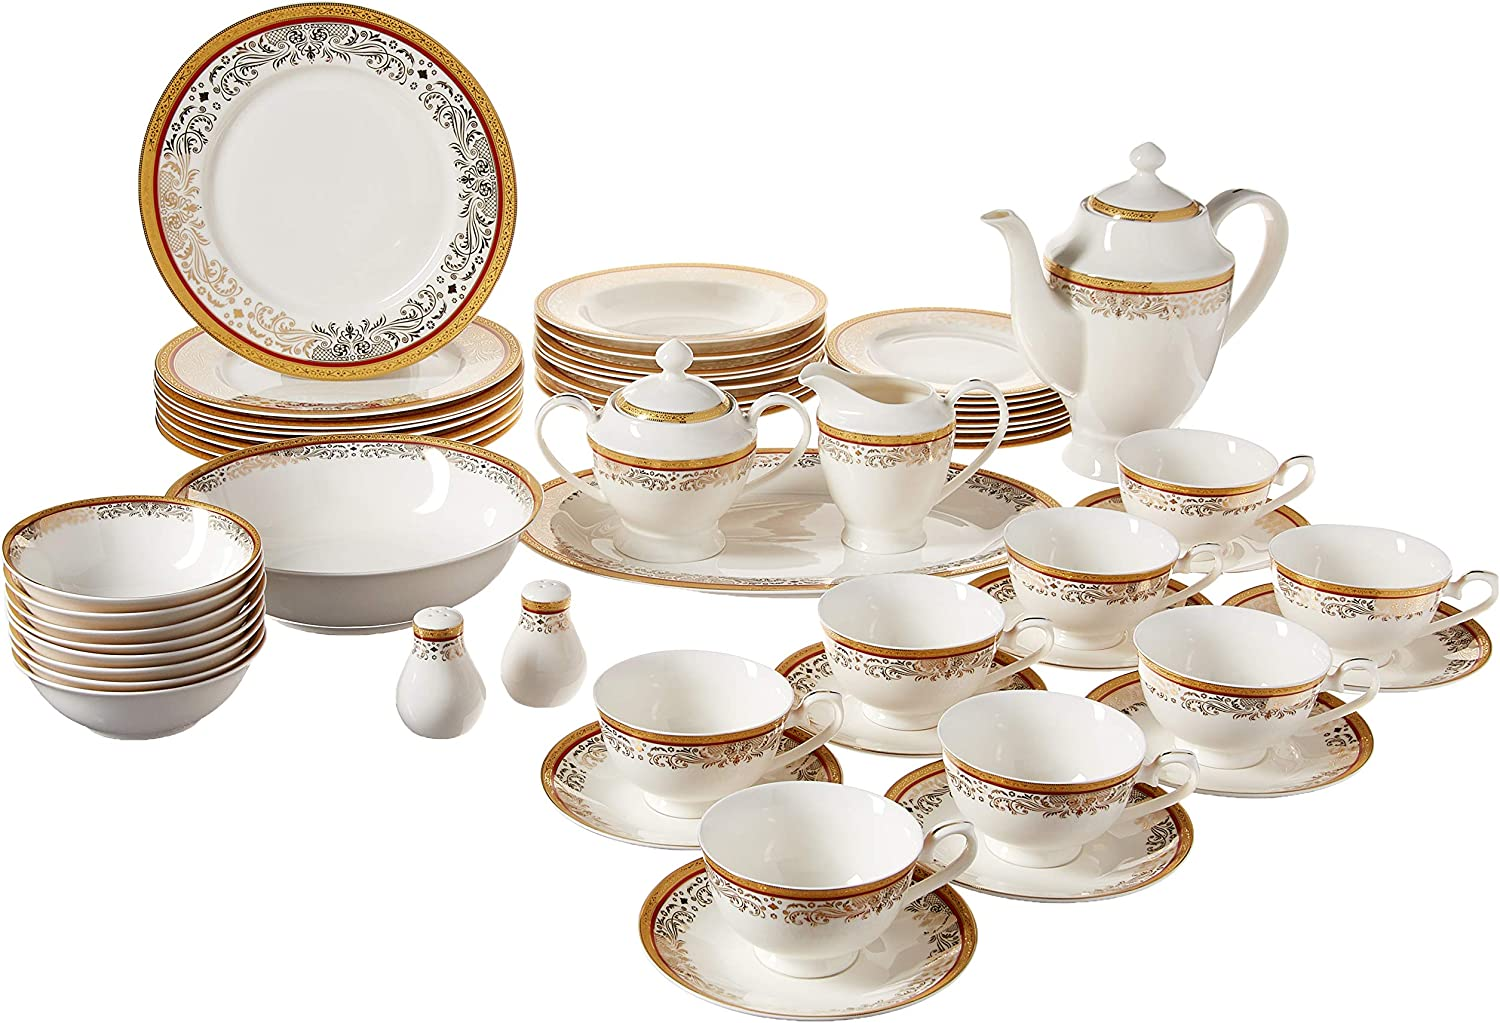 Lorren Home Trends La Luna Collection Bone China 57-Piece 24K Gold Greek Key Design Dinnerware Set, Service for 8